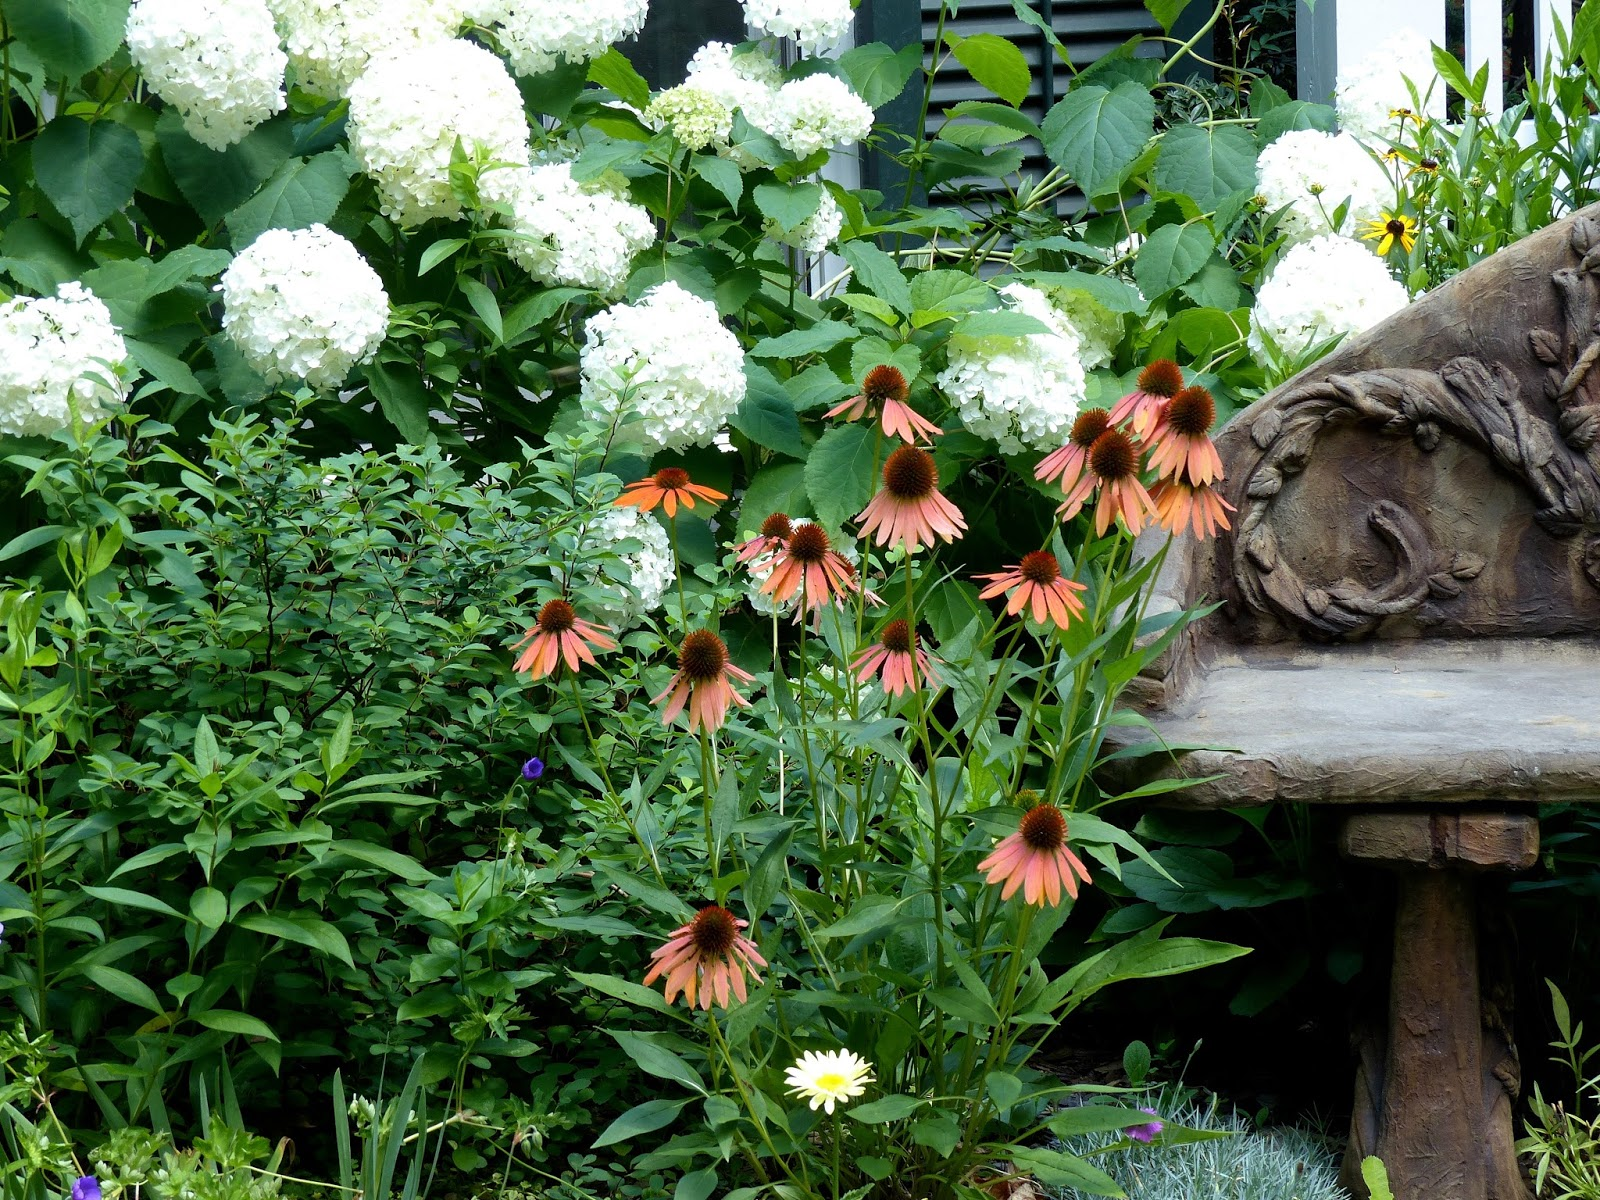 Garden Photo Of The Day 2017